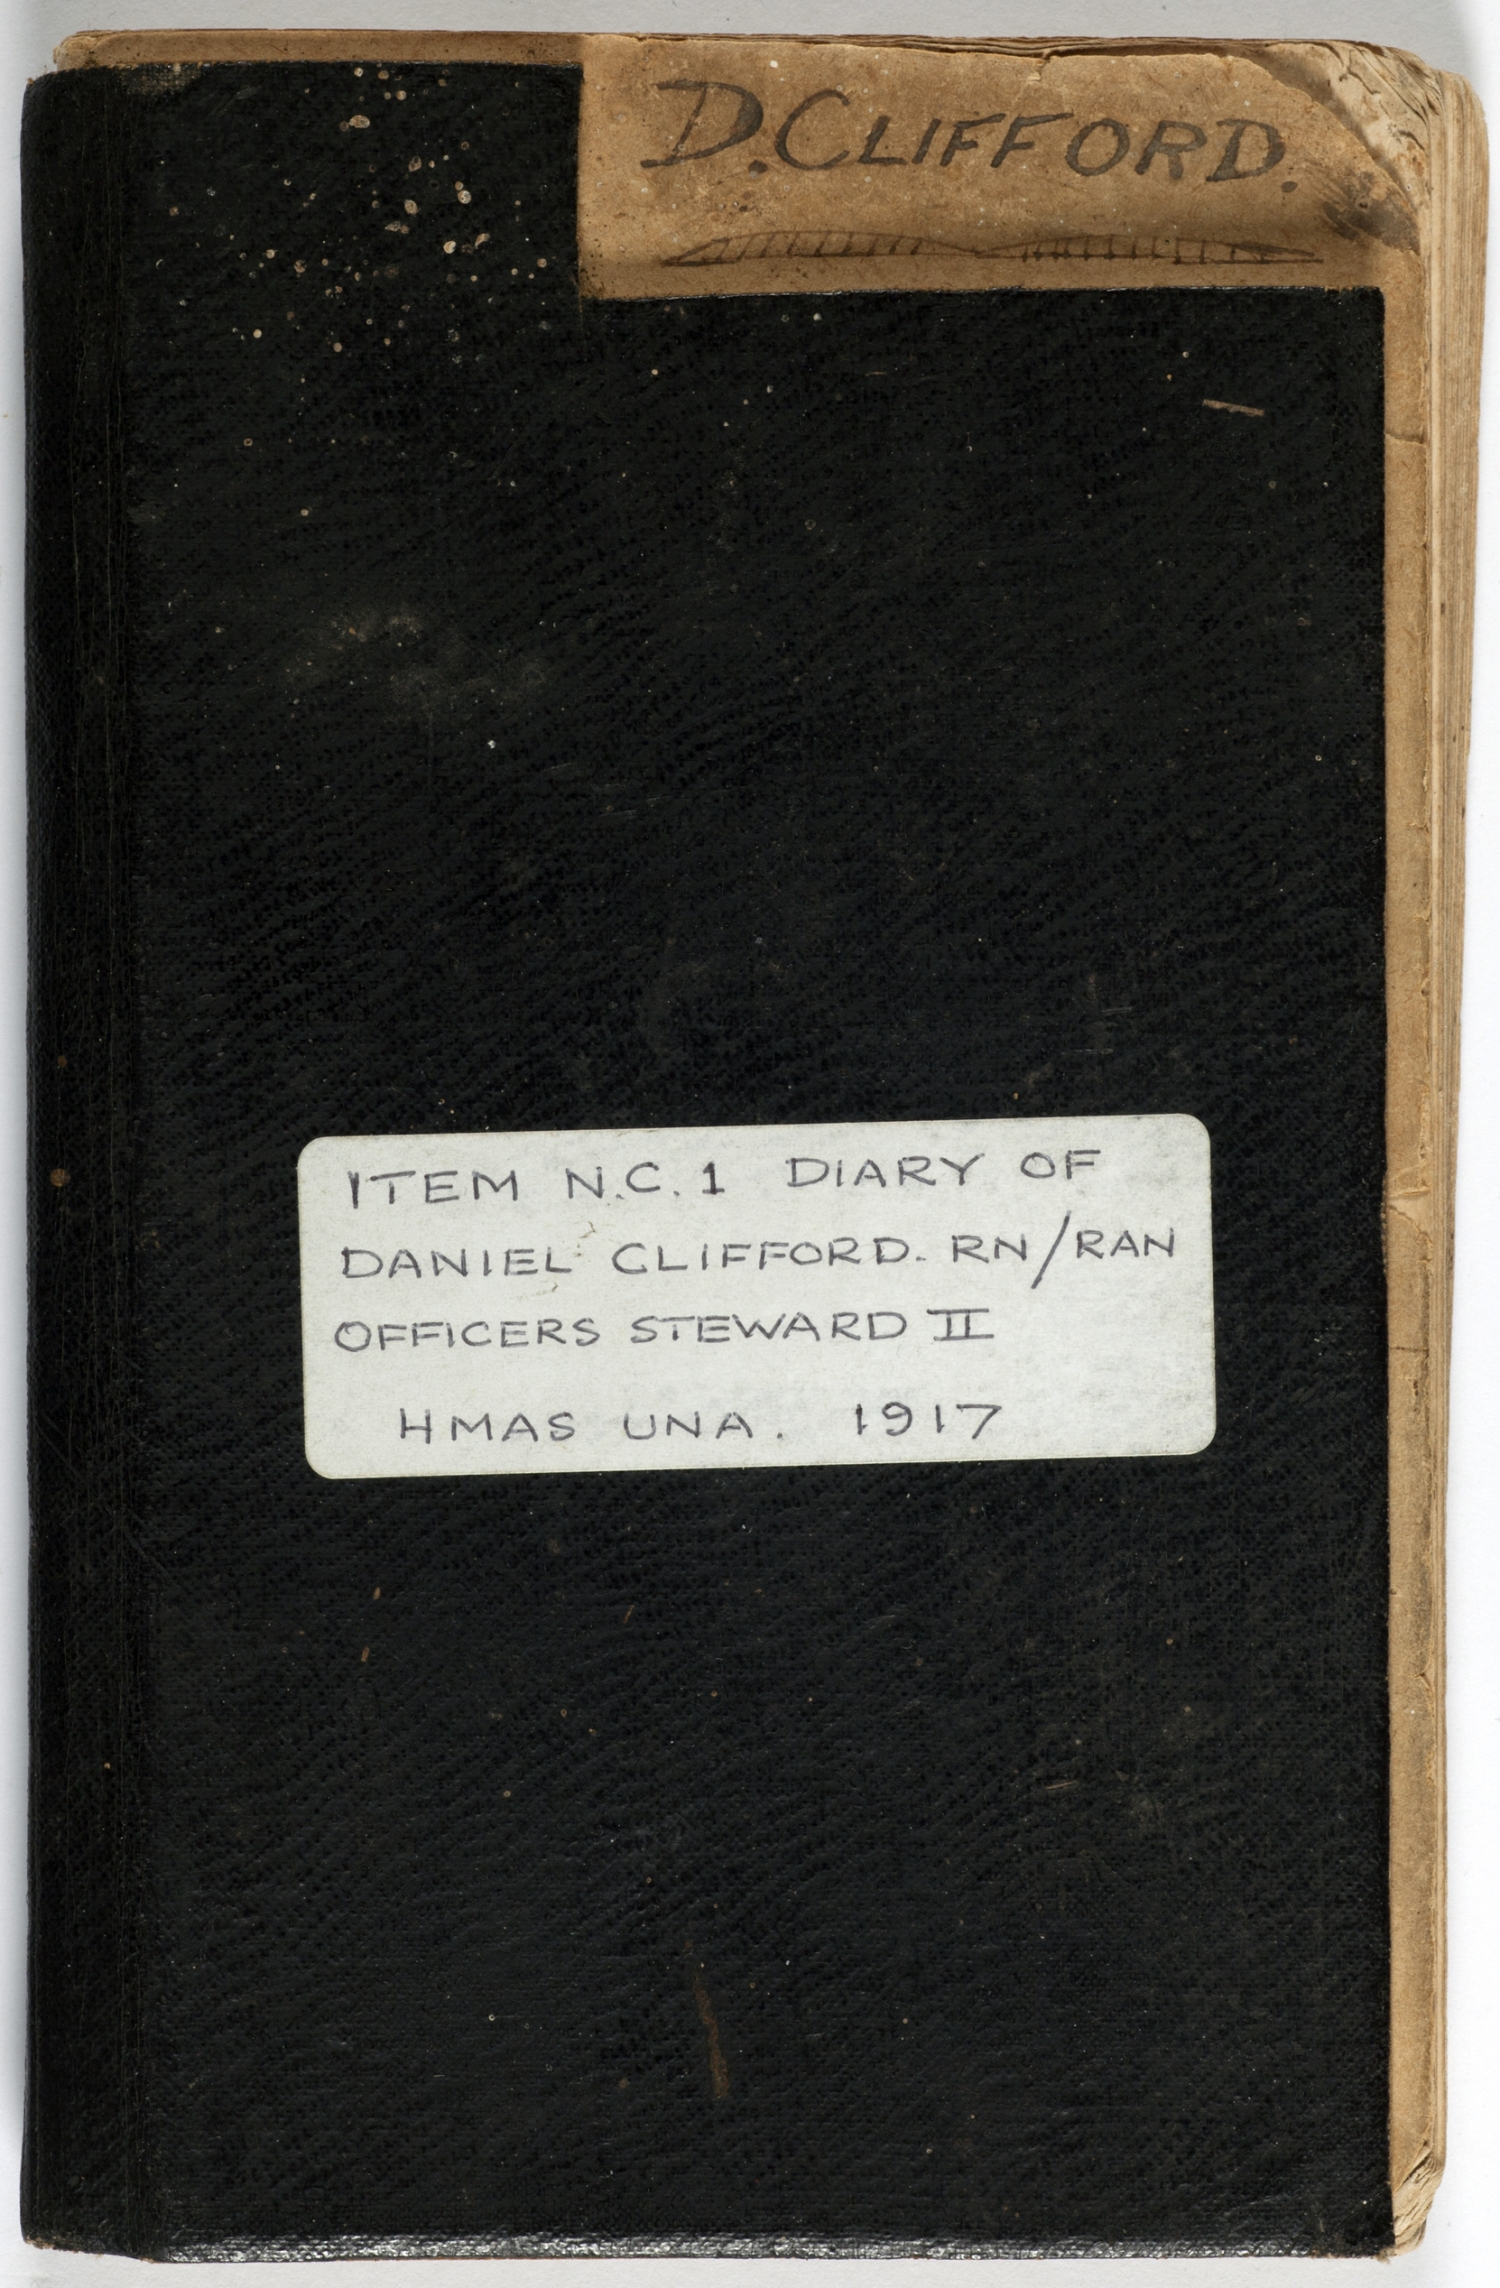 Leather cover of diary with white sticker on front.